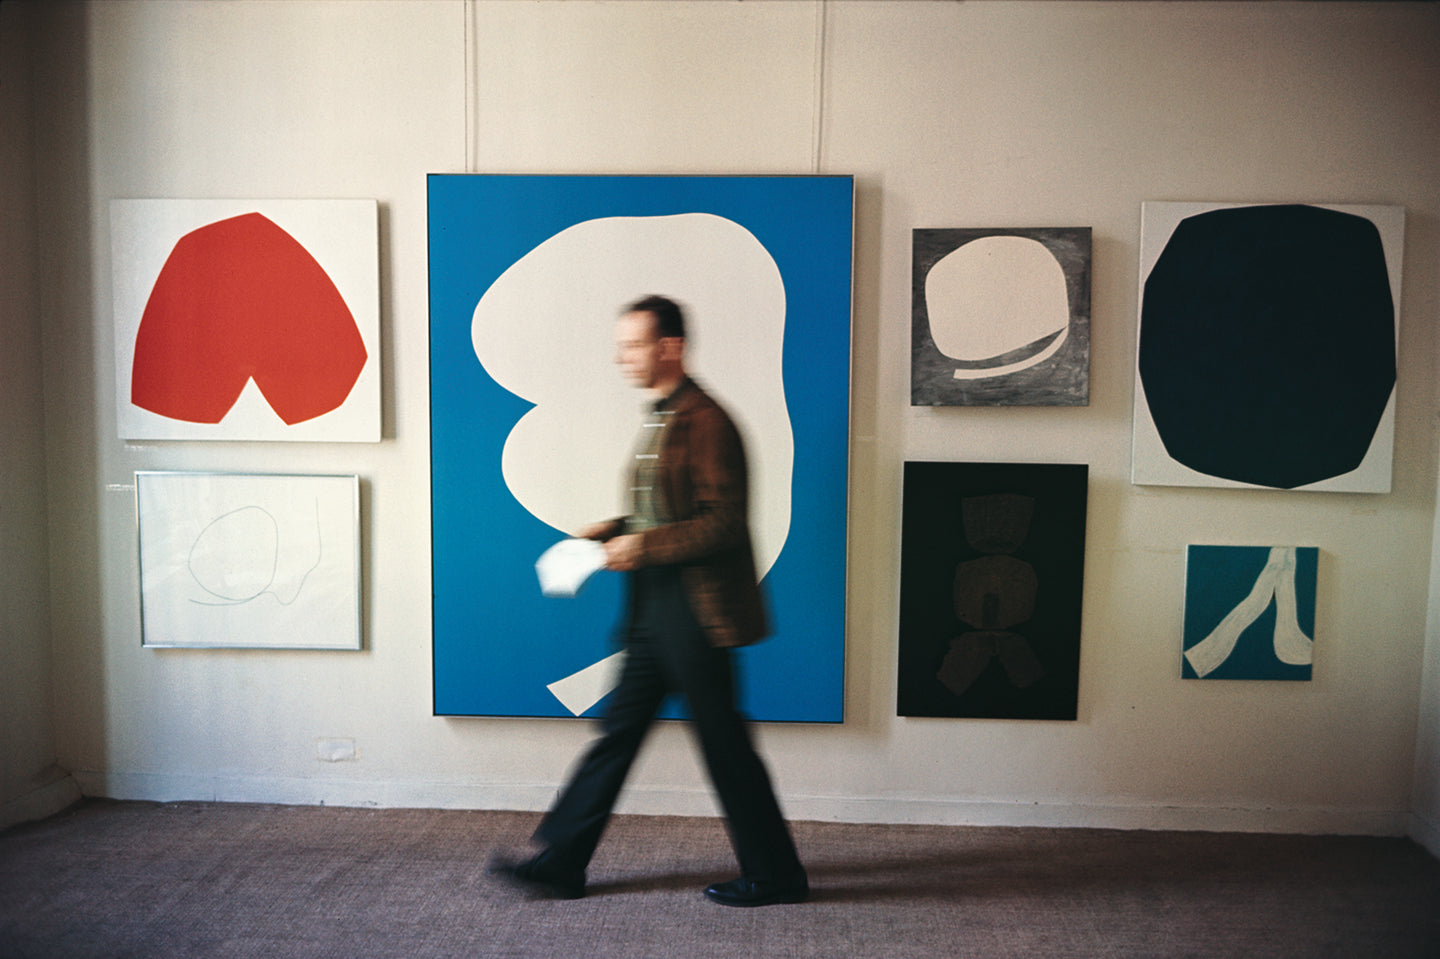 Ellsworth Kelly (1923 - ), Betty Parson's Gallery, 57th Street, New York, 1964